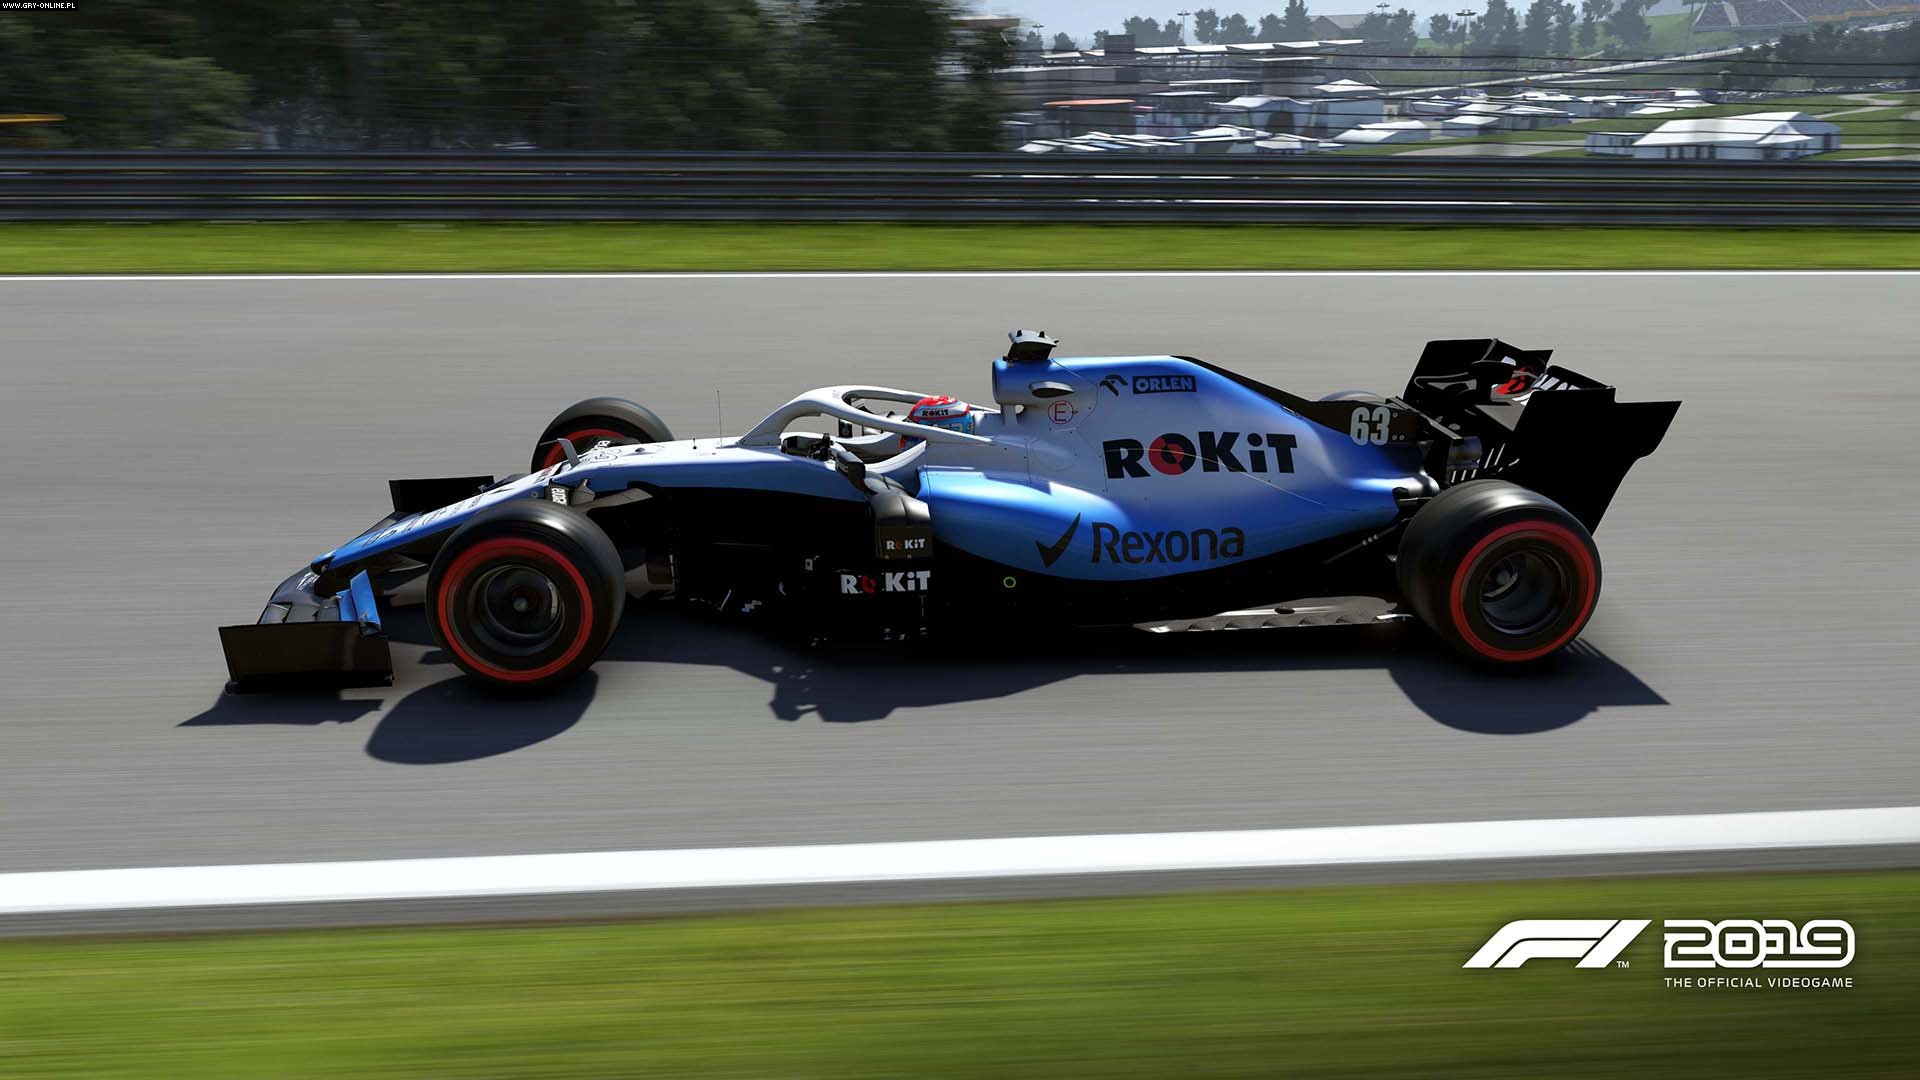 F1 2019 PC, PS4, XONE Games Image 36/104, Codemasters Software